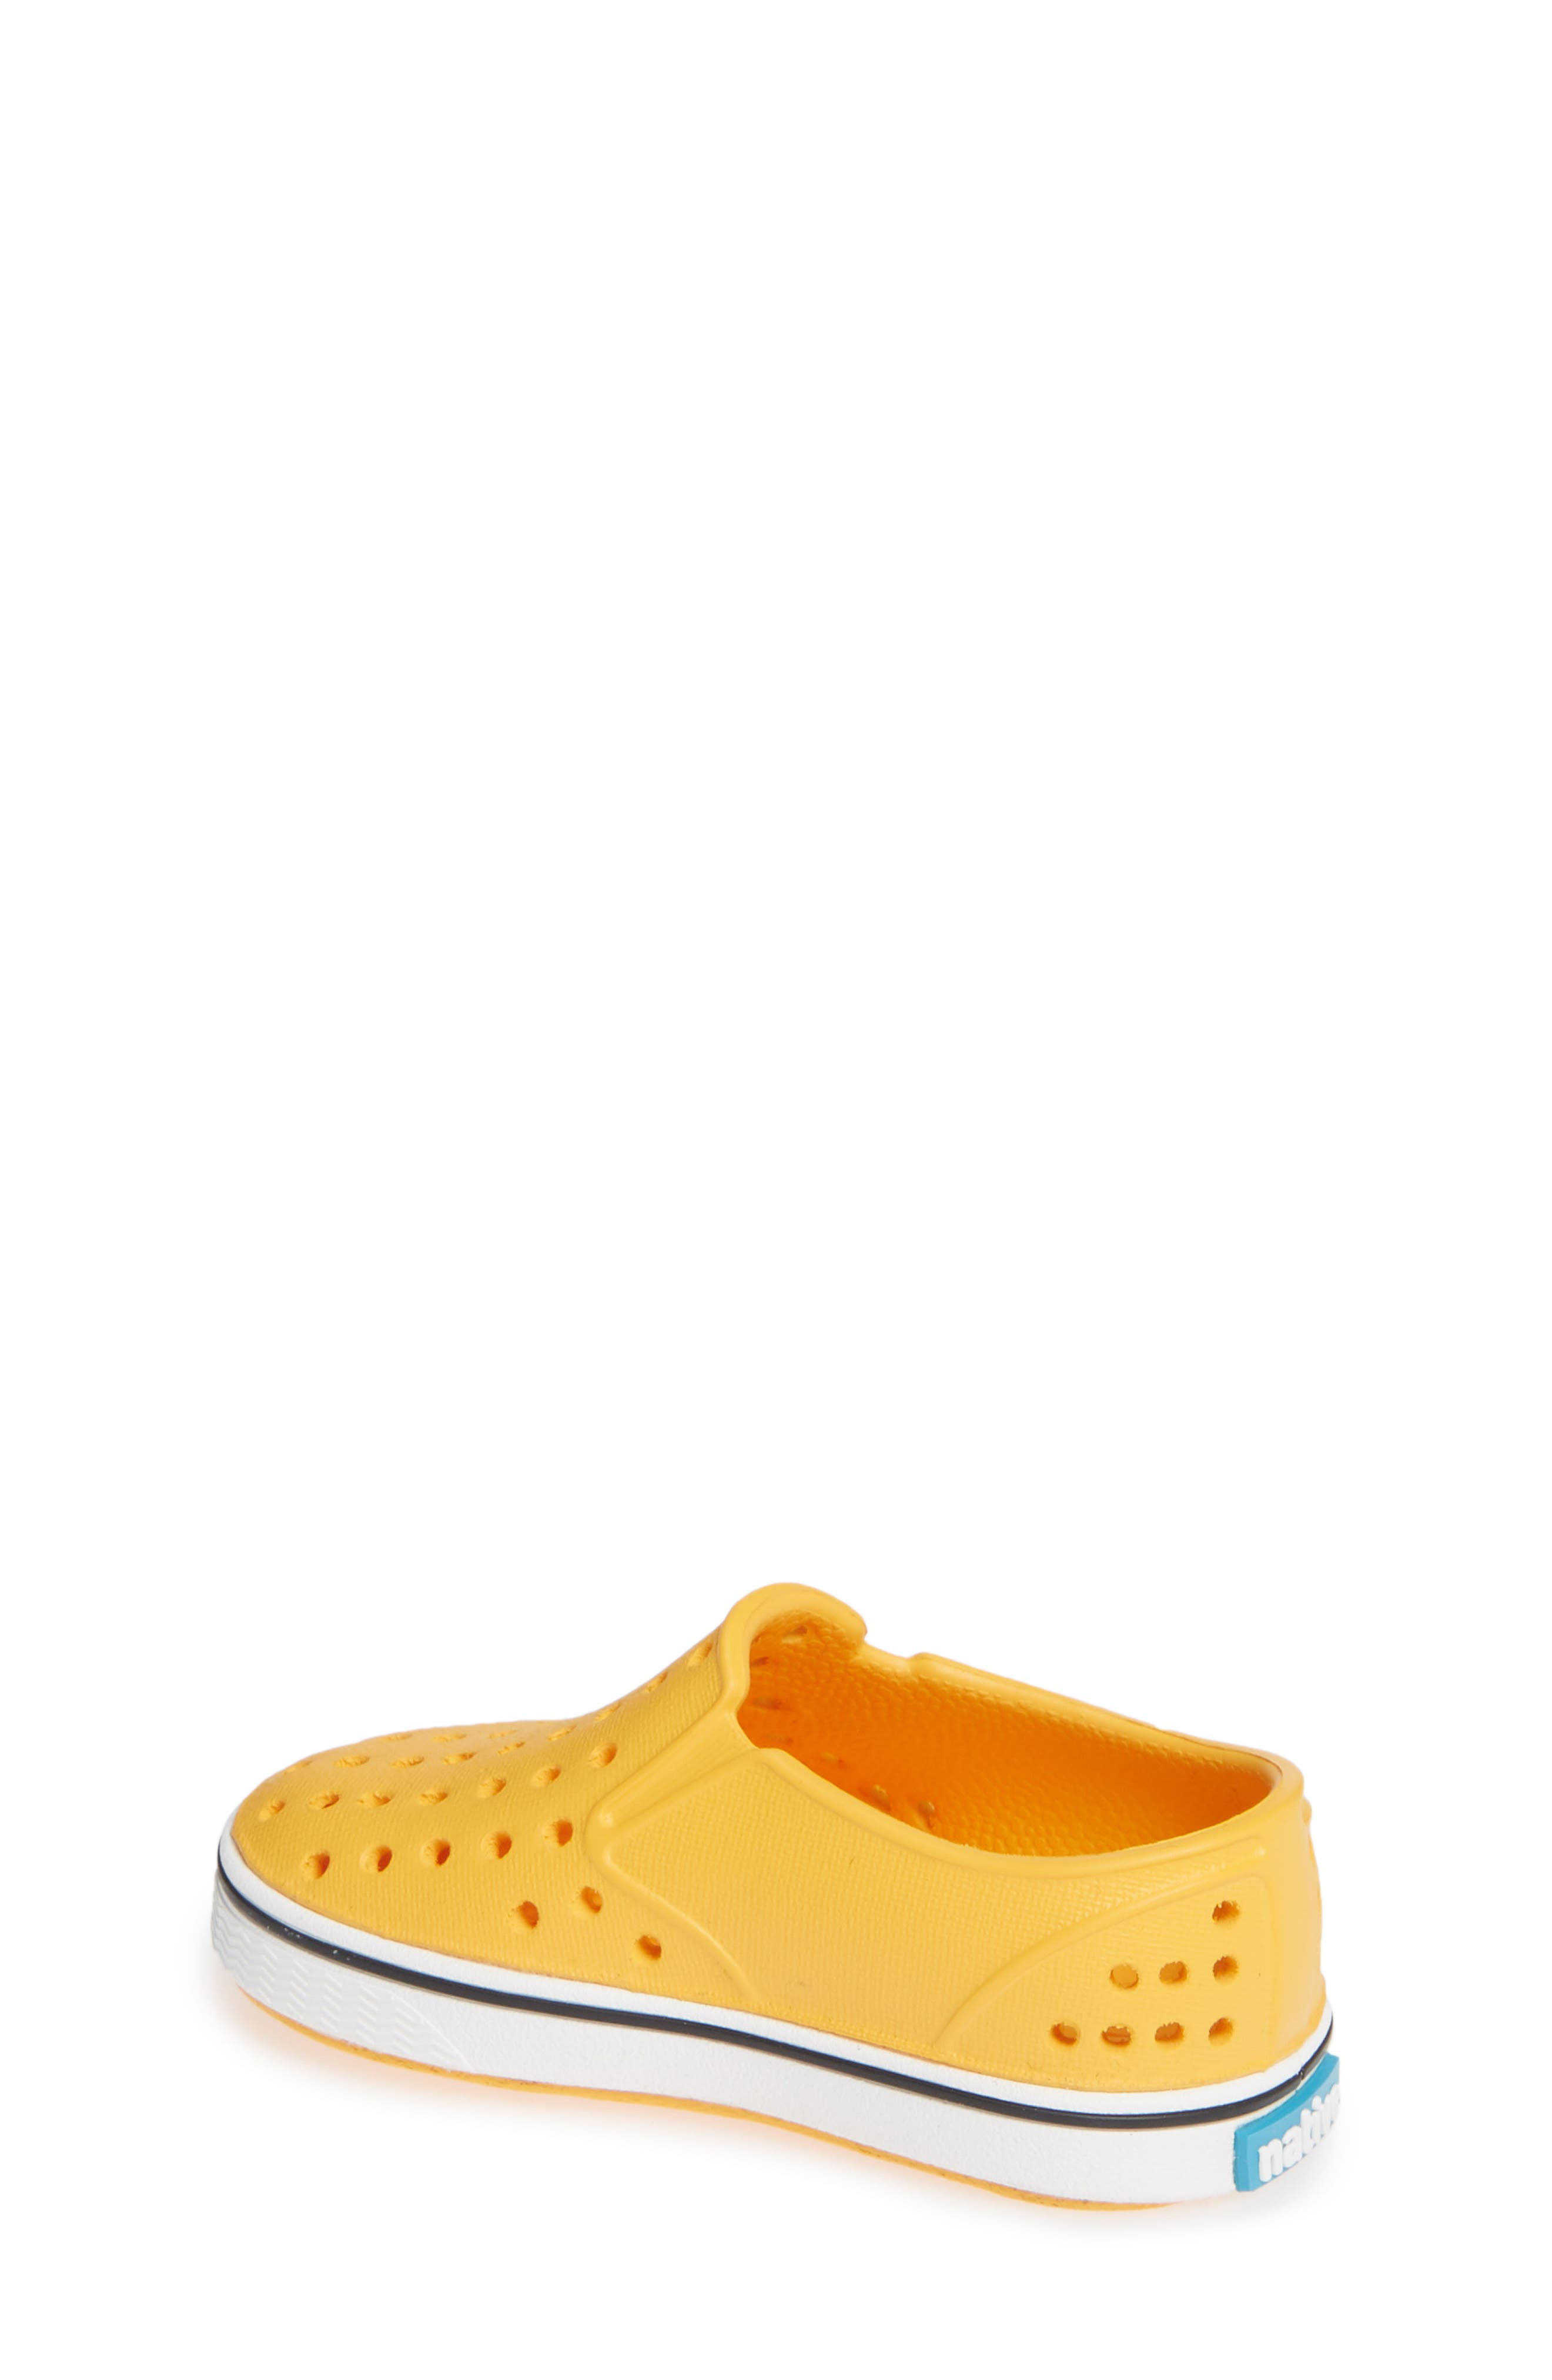 Miles Water Friendly Slip-On Sneaker,                             Alternate thumbnail 2, color,                             Beanie Yellow/ Shell White